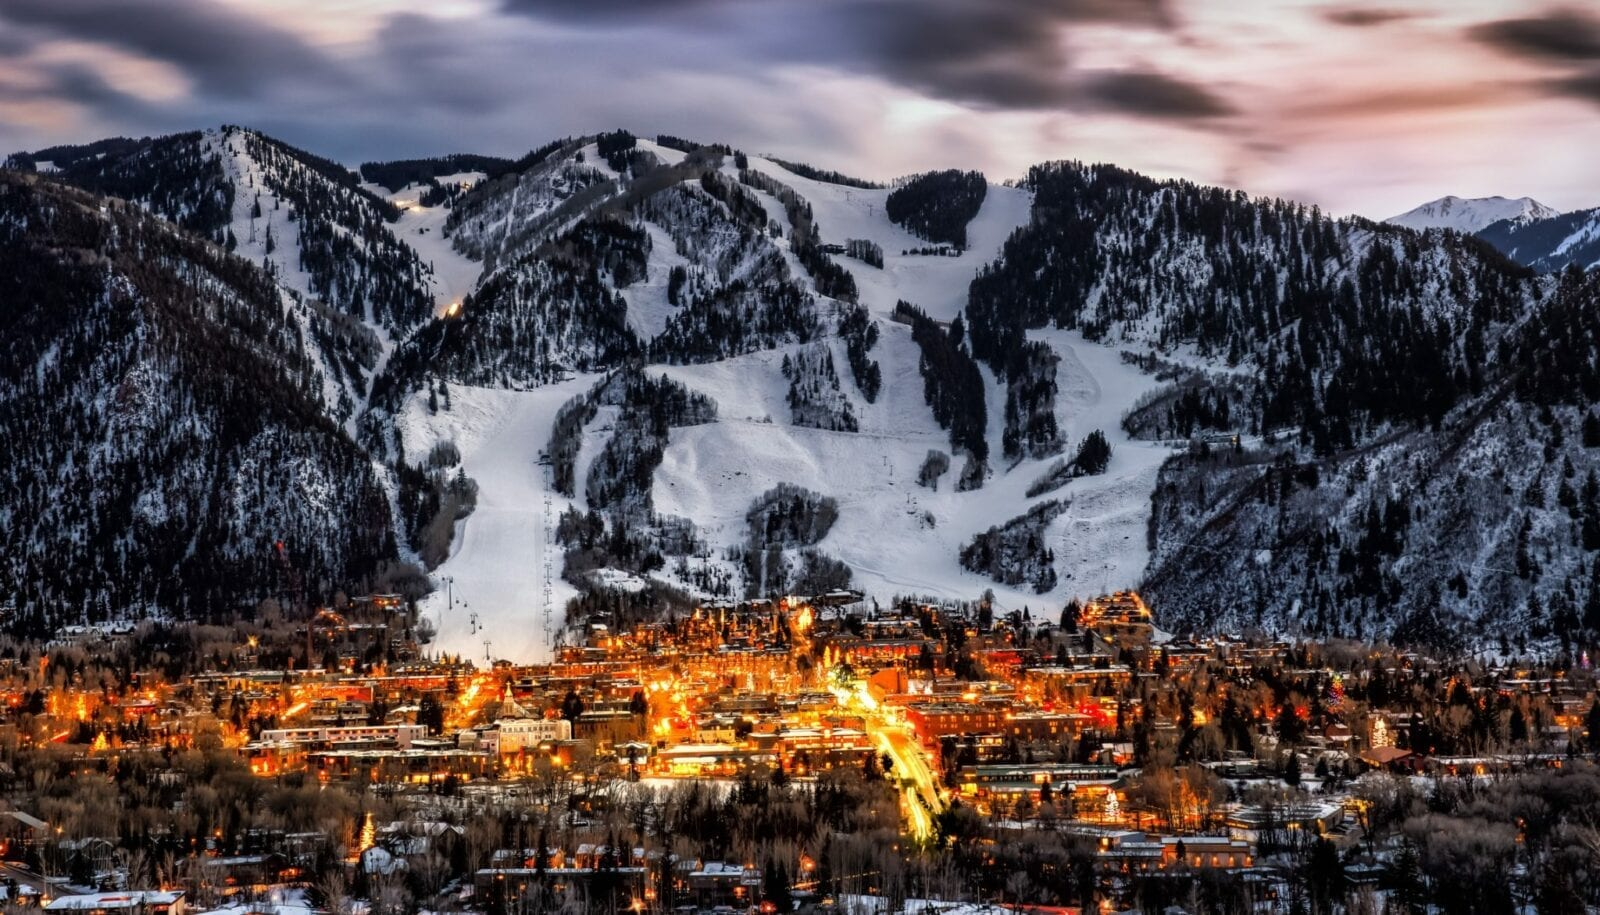 image of Aspen Colorado